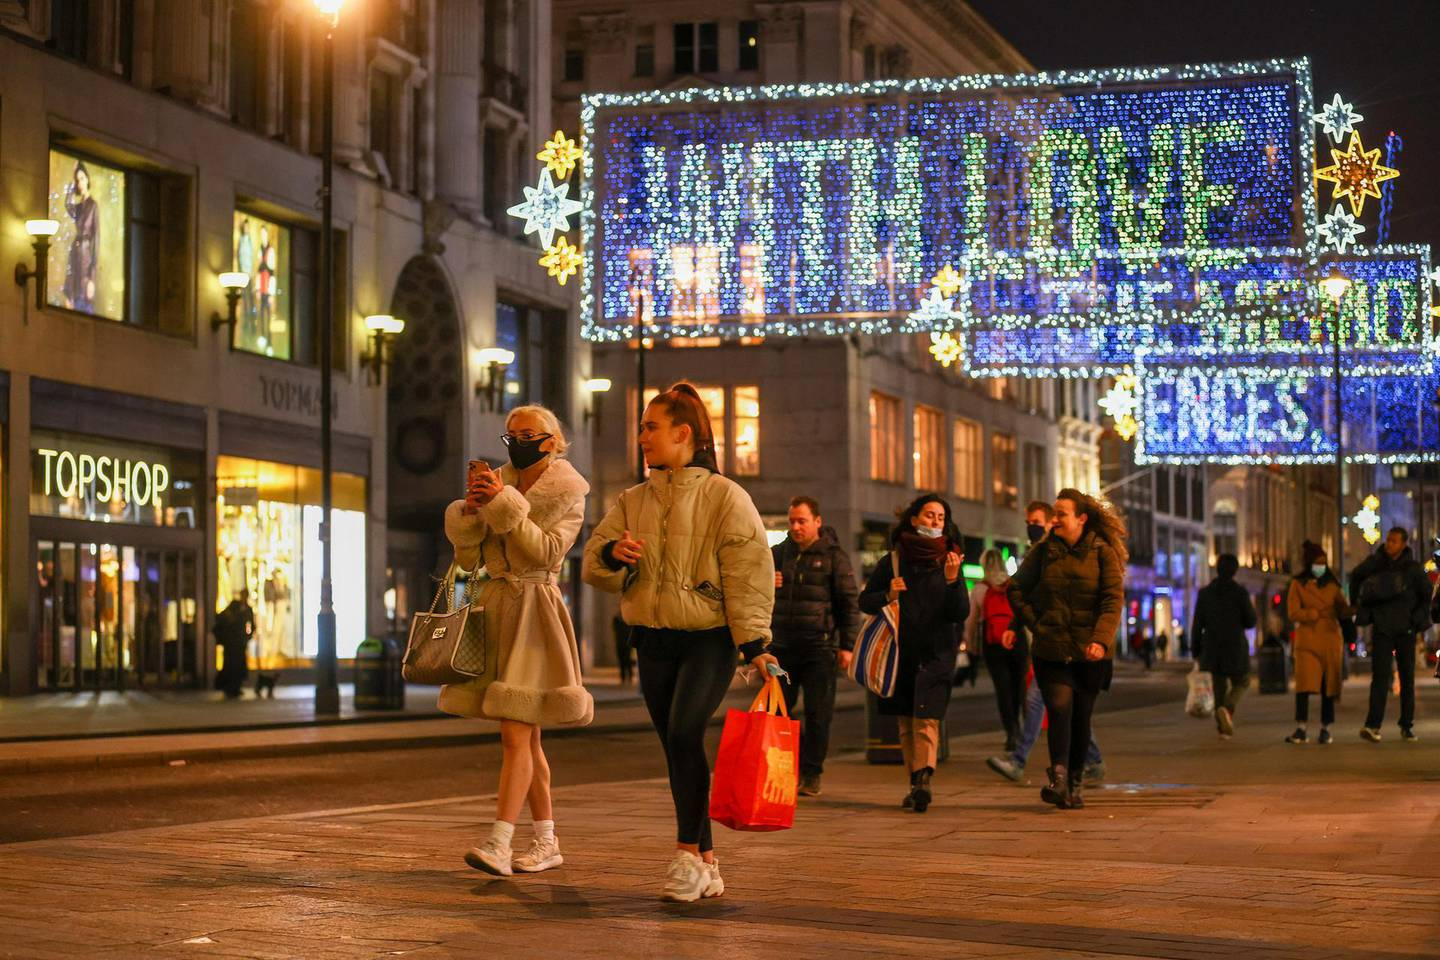 Pedestrians pass festive lights on Oxford Street in London, U.K., on Tuesday, Nov. 17, 2020. With a partial lockdown in England closing all non-essential stores until at least Dec. 2, rescuing the next six weeks from Covid-19 is critical for the U.K.'s financial well-being and a government beset by accusations that it can't get a grip on the pandemic. Photographer: Simon Dawson/Bloomberg